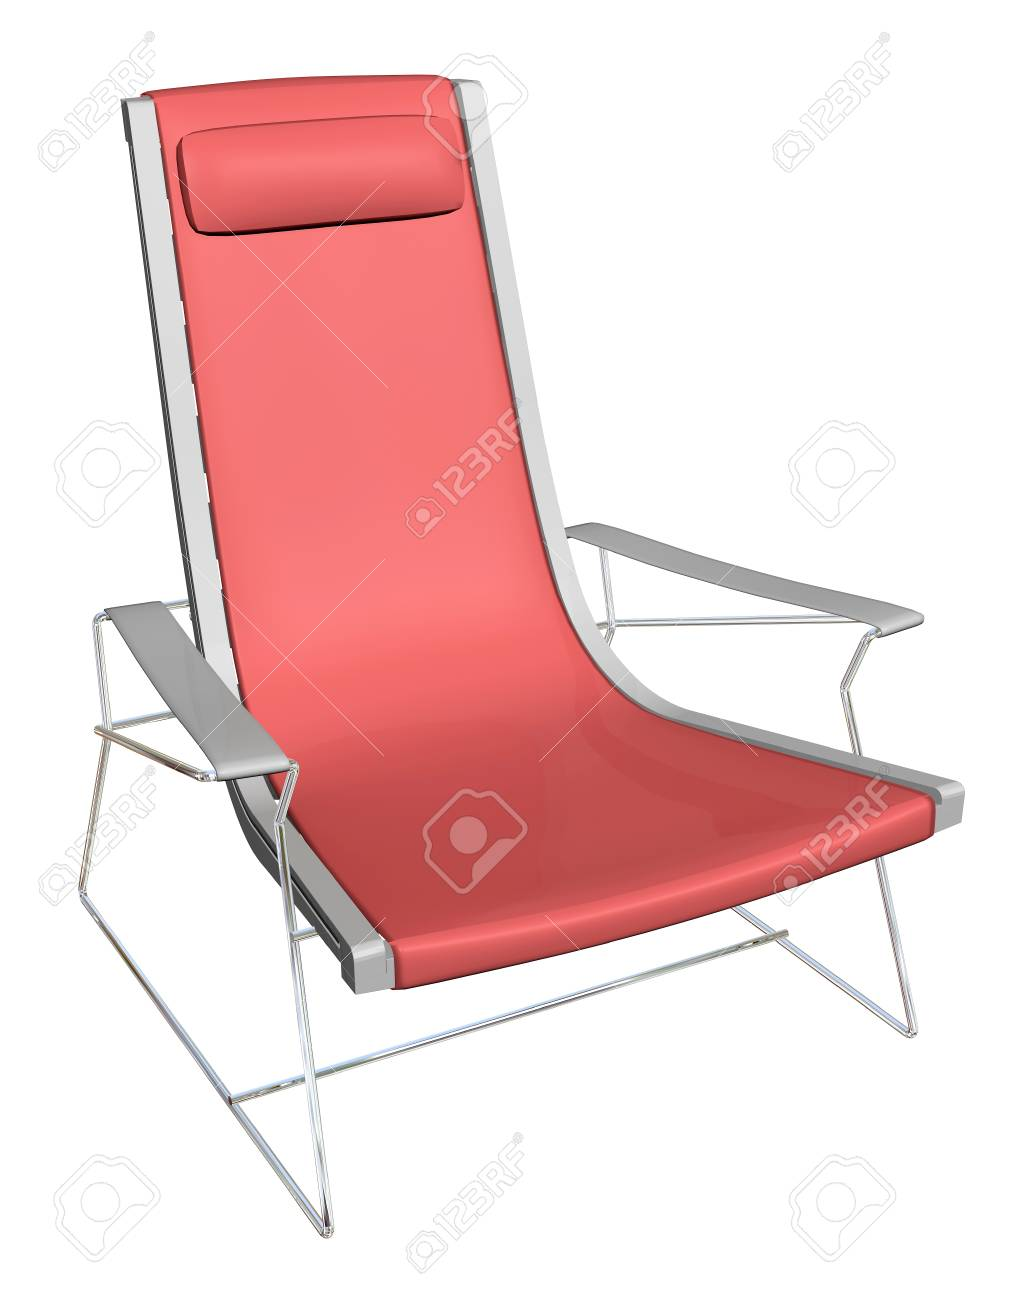 Plastic Lounge Chair Stock Illustration